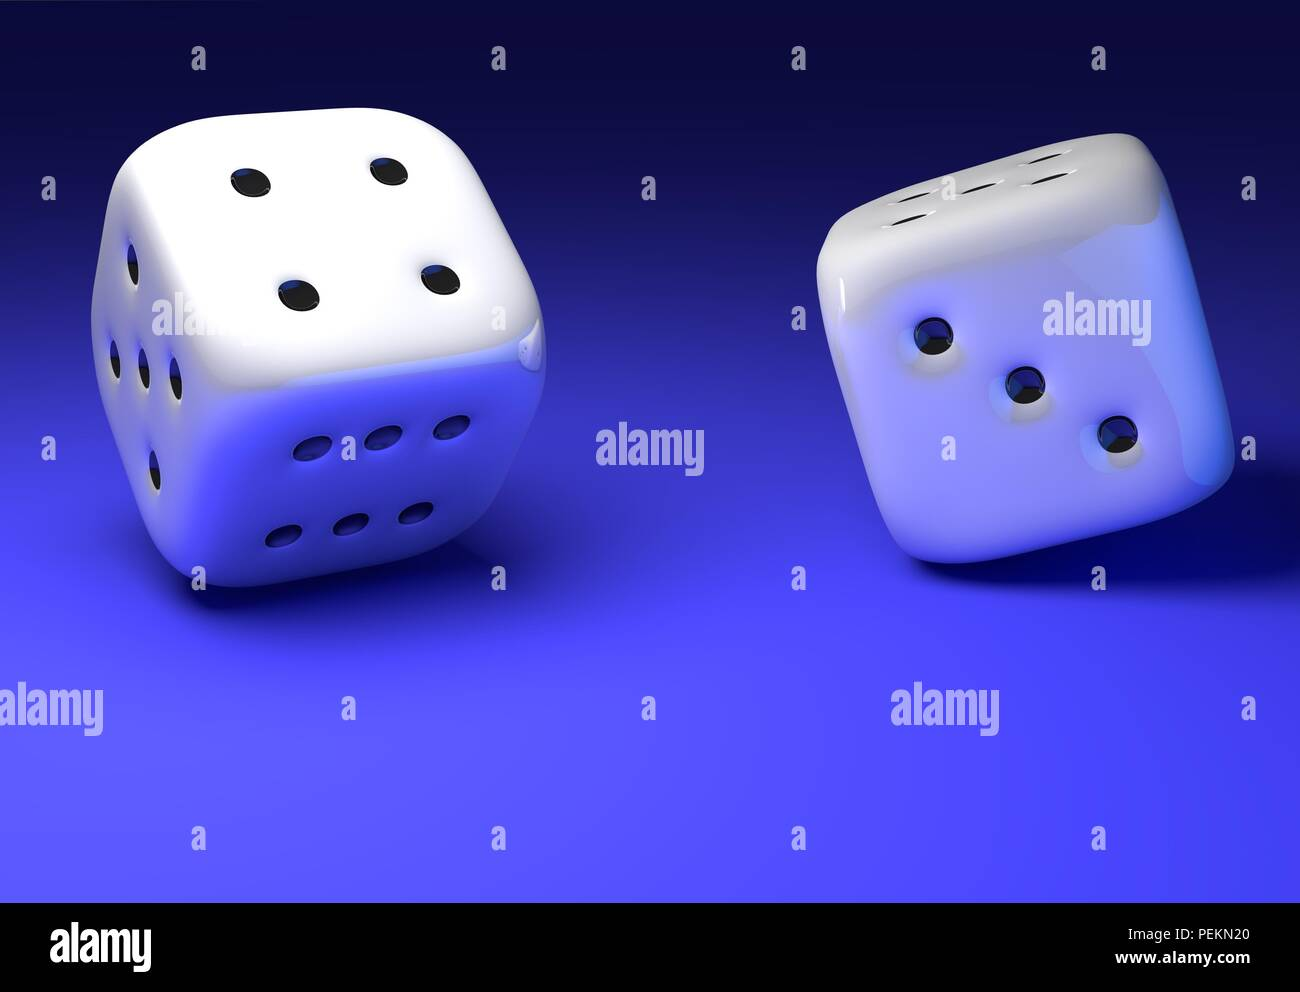 Dice Photo. Double dices are throwed and on move. Dynamical Photo of Two Dices on blue table. - Stock Image